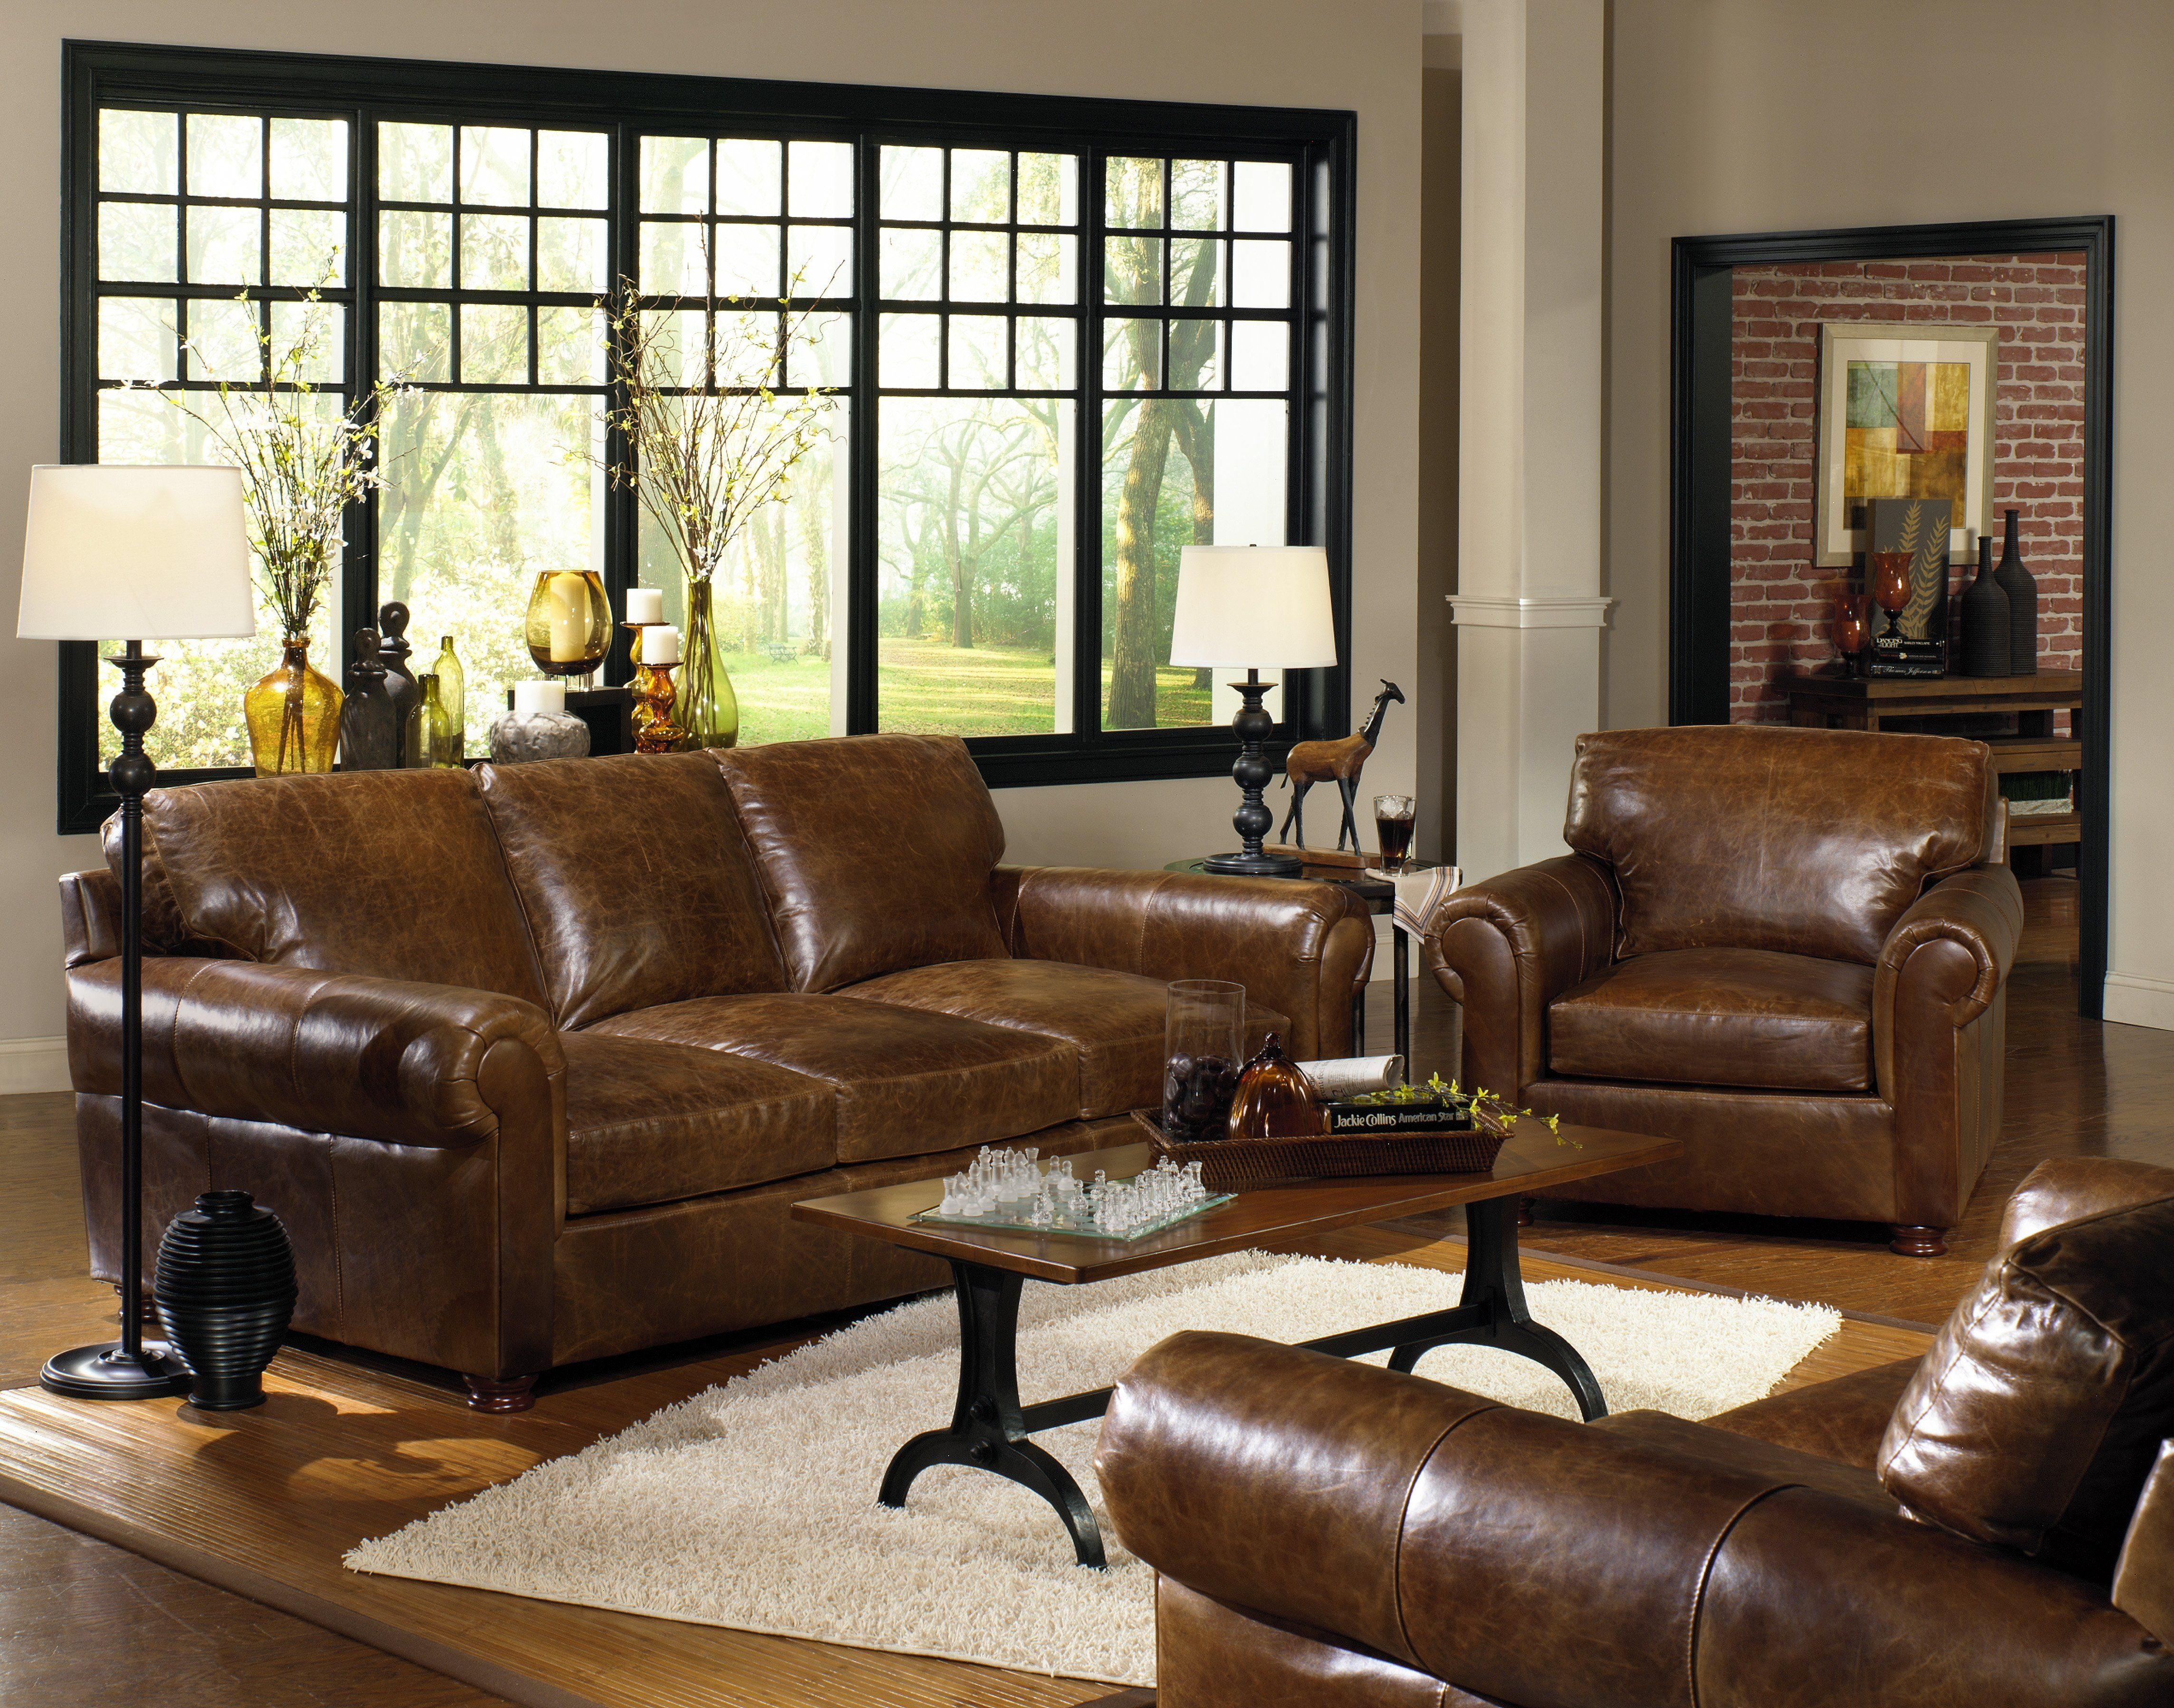 Gorgeous USA Premium Leather couches and chairs in Liberty Cashew